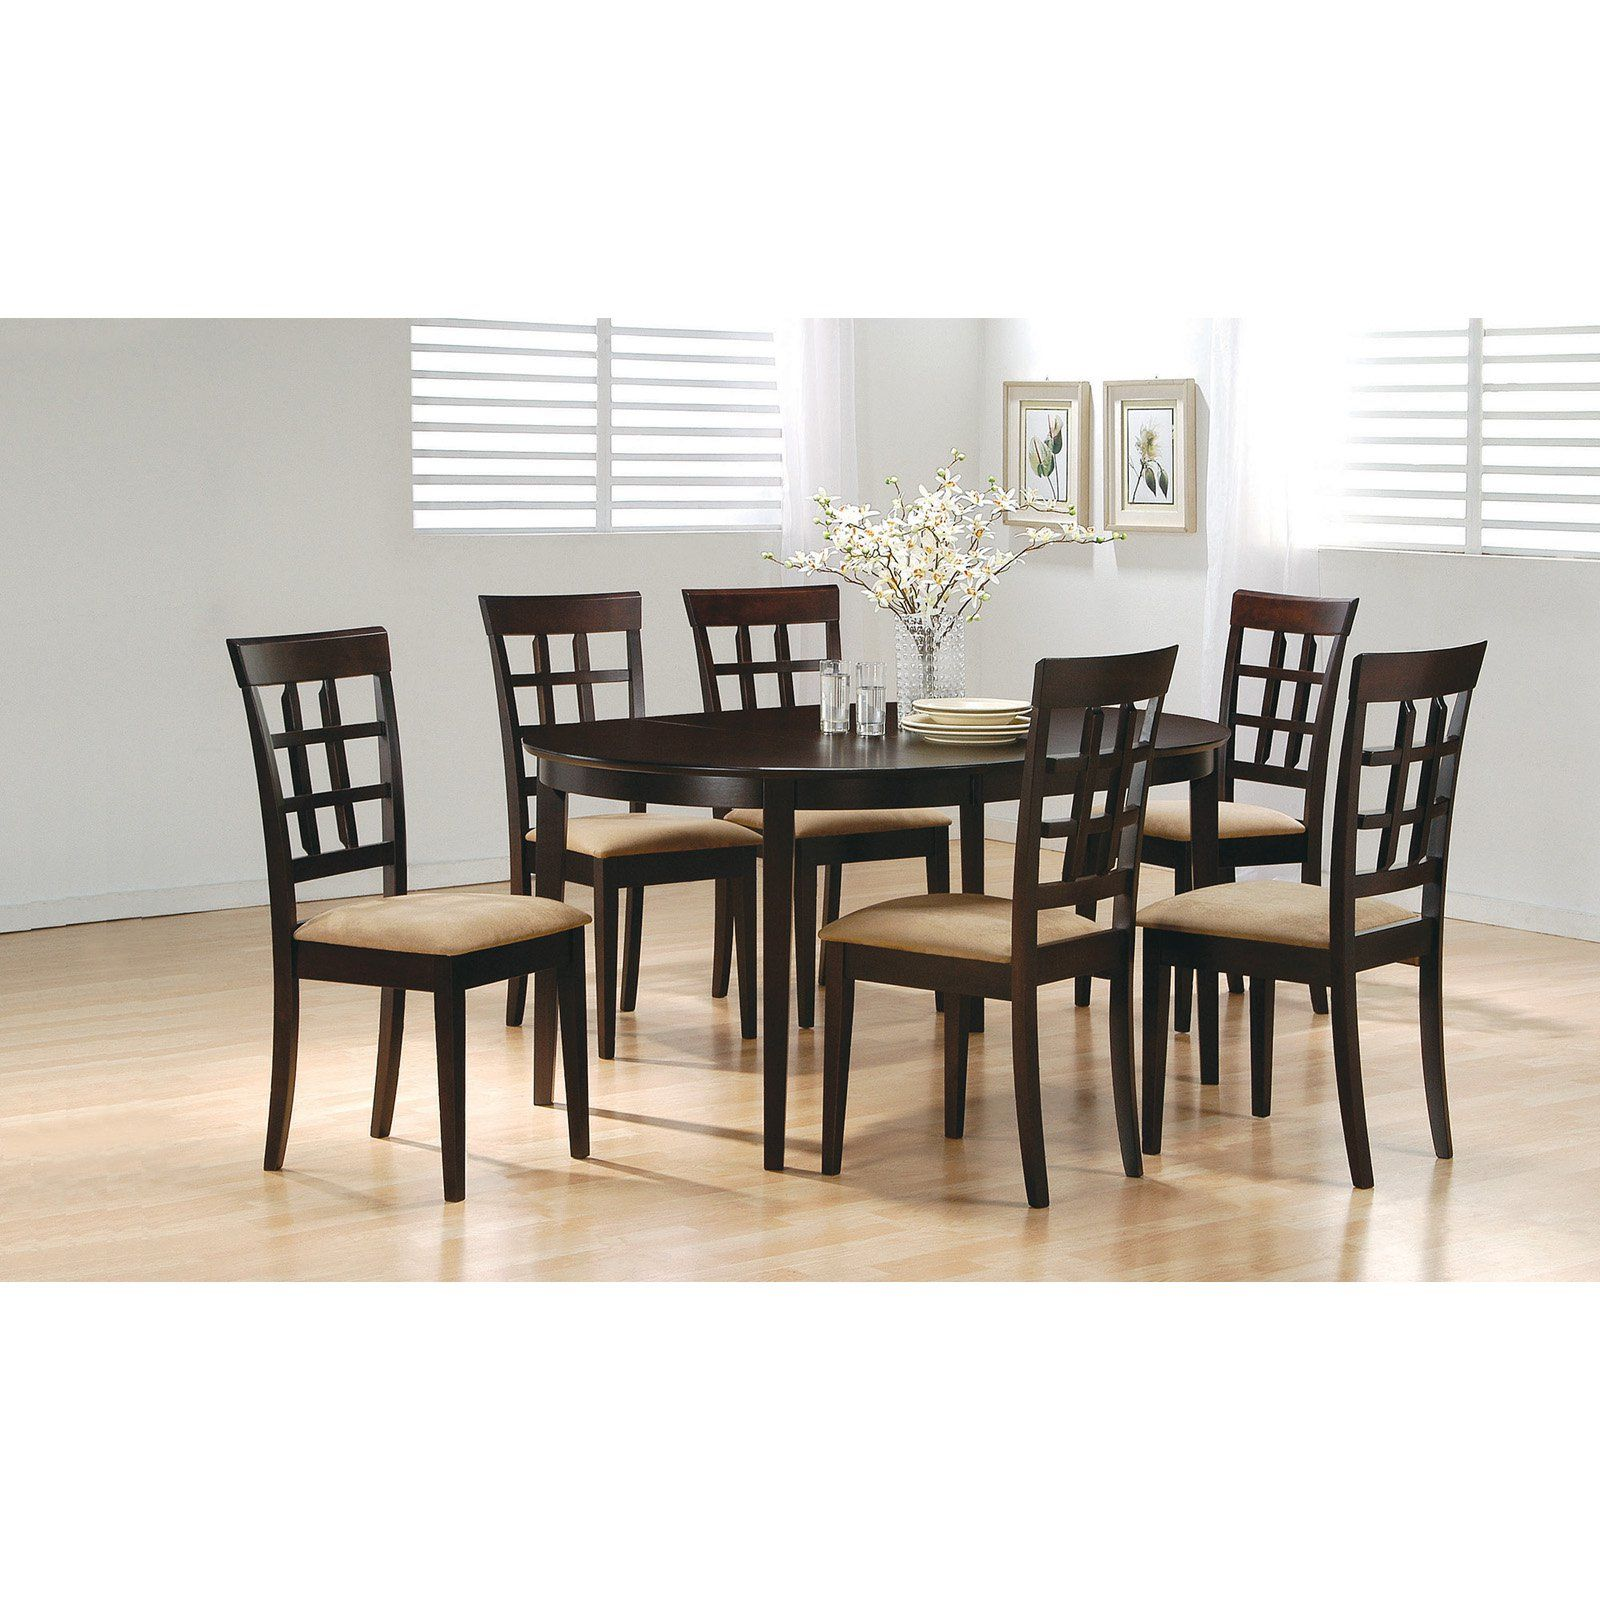 Coaster Furniture Gabriel Dining Table Dining Room Furniture